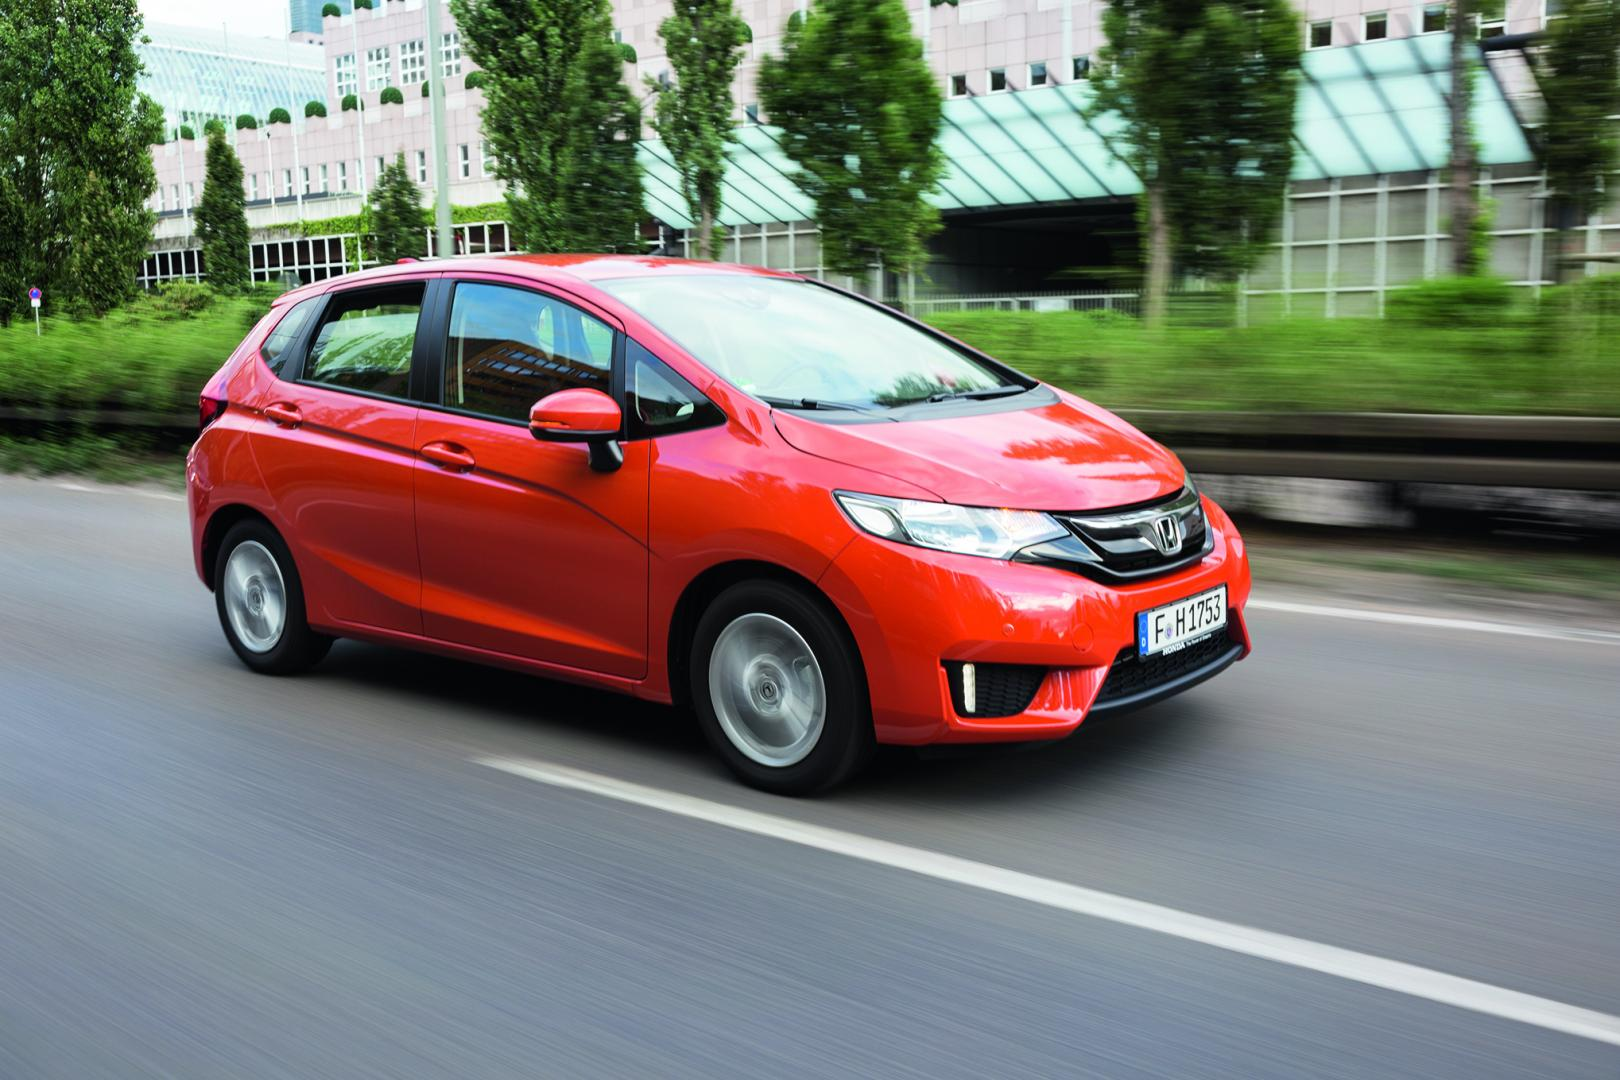 honda jazz 1 3 i vtec testdrive topgear nederland. Black Bedroom Furniture Sets. Home Design Ideas